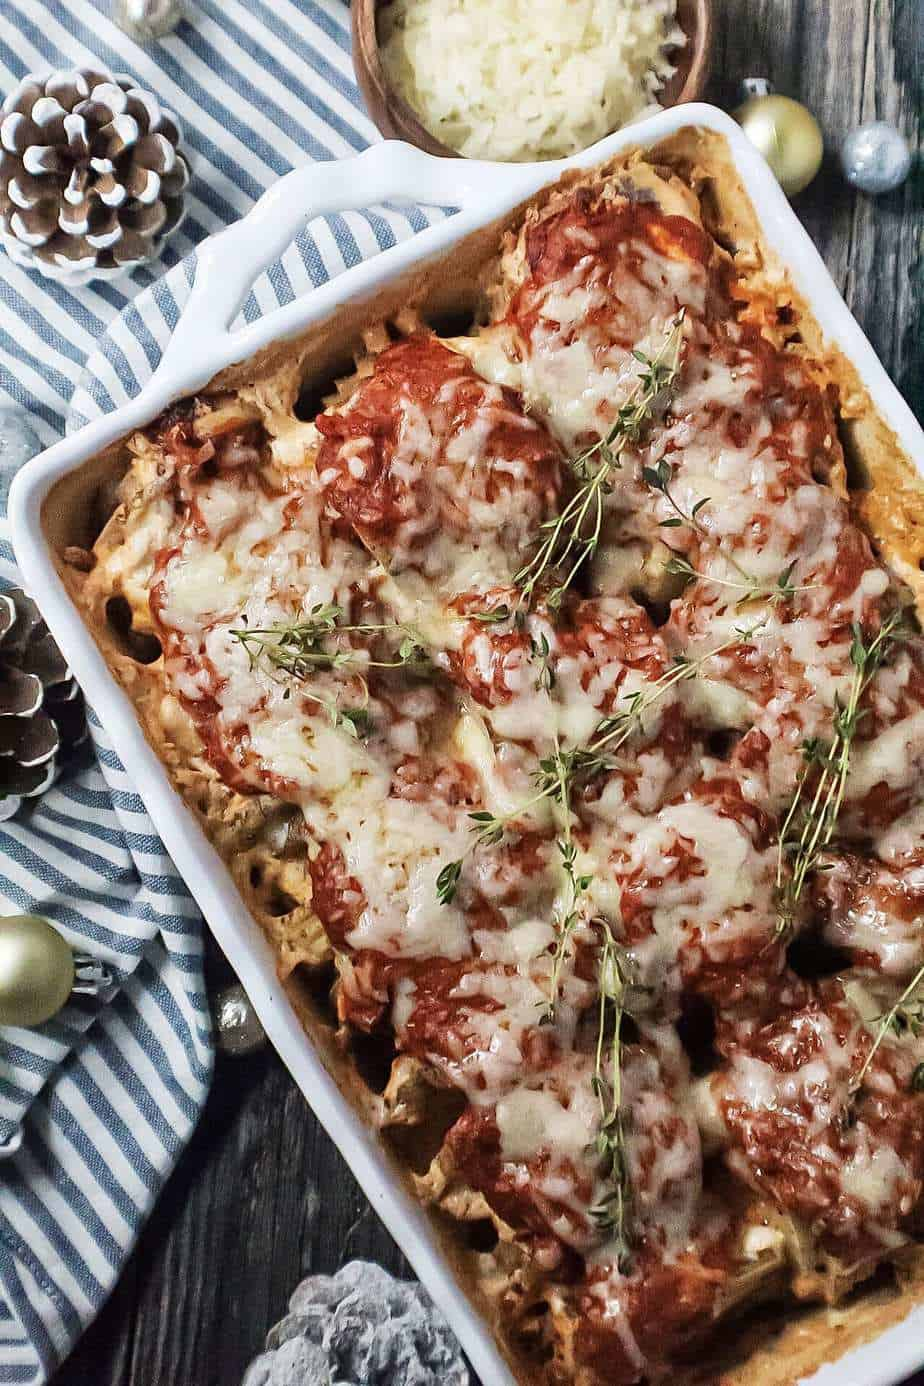 sliced potatoes topped with red pesto and cheese in a white baking dish garnished with fresh herbs and on top of striped linen.